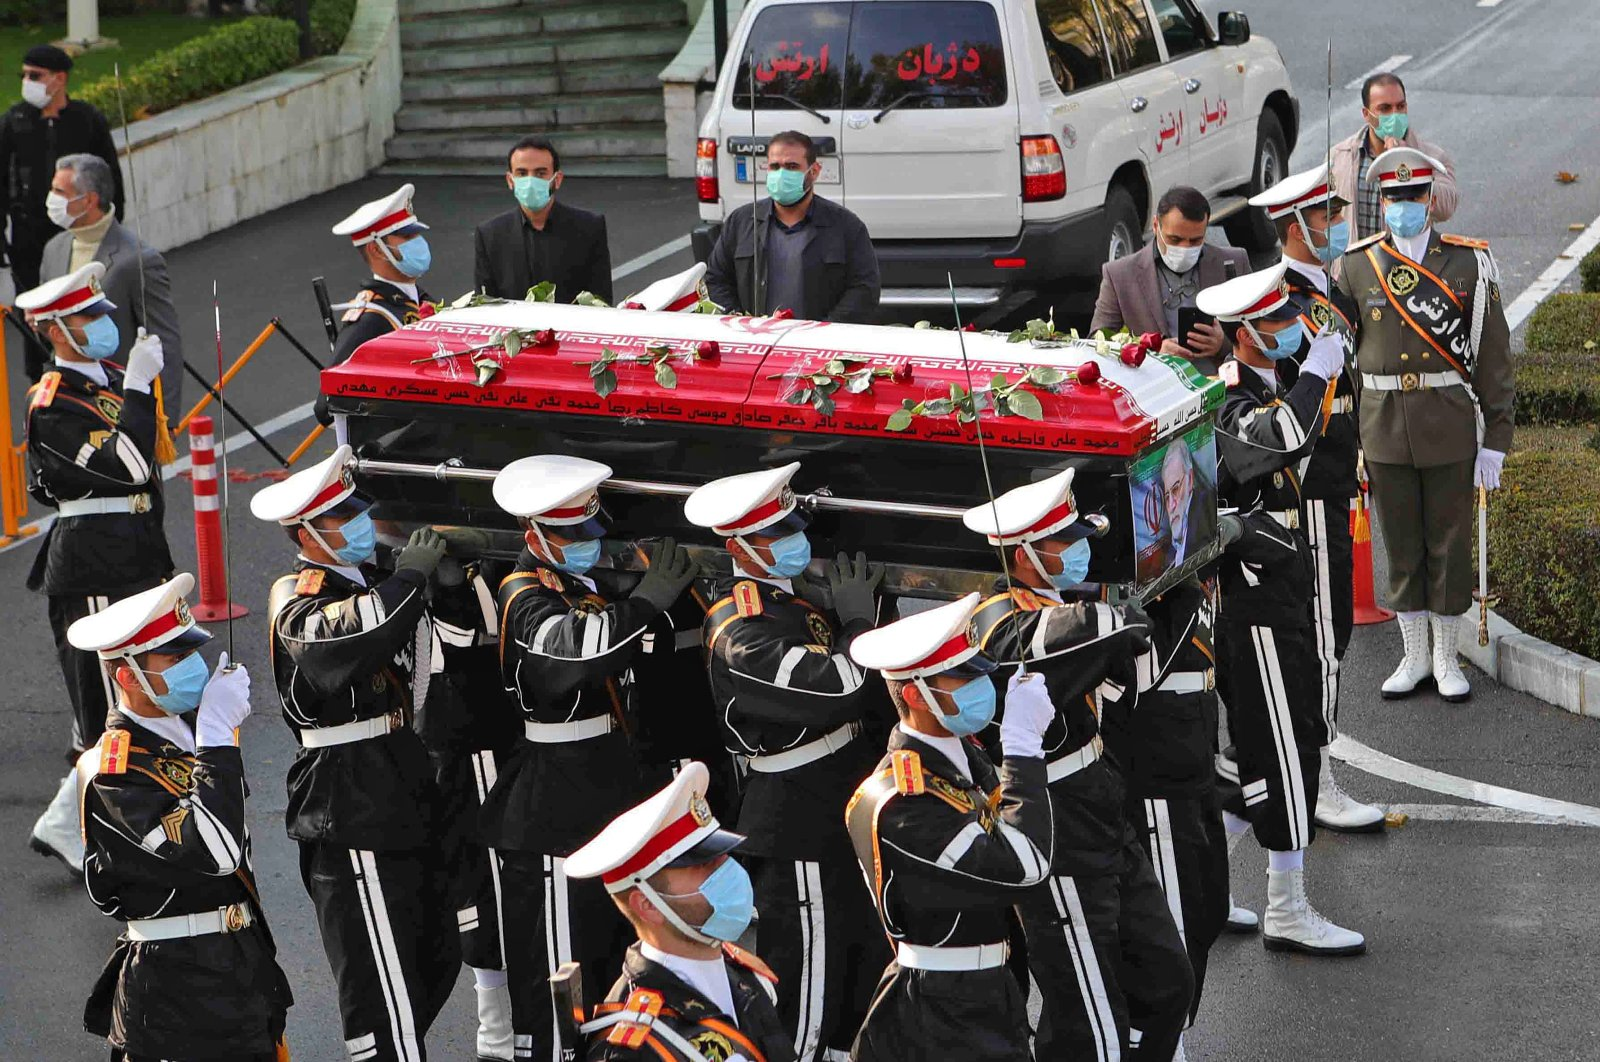 Members of Iranian forces carry the coffin of slain top nuclear scientist Mohsen Fakhrizadeh during his funeral ceremony in Iran's capital Tehran, Nov. 30, 2020. (AFP Photo)